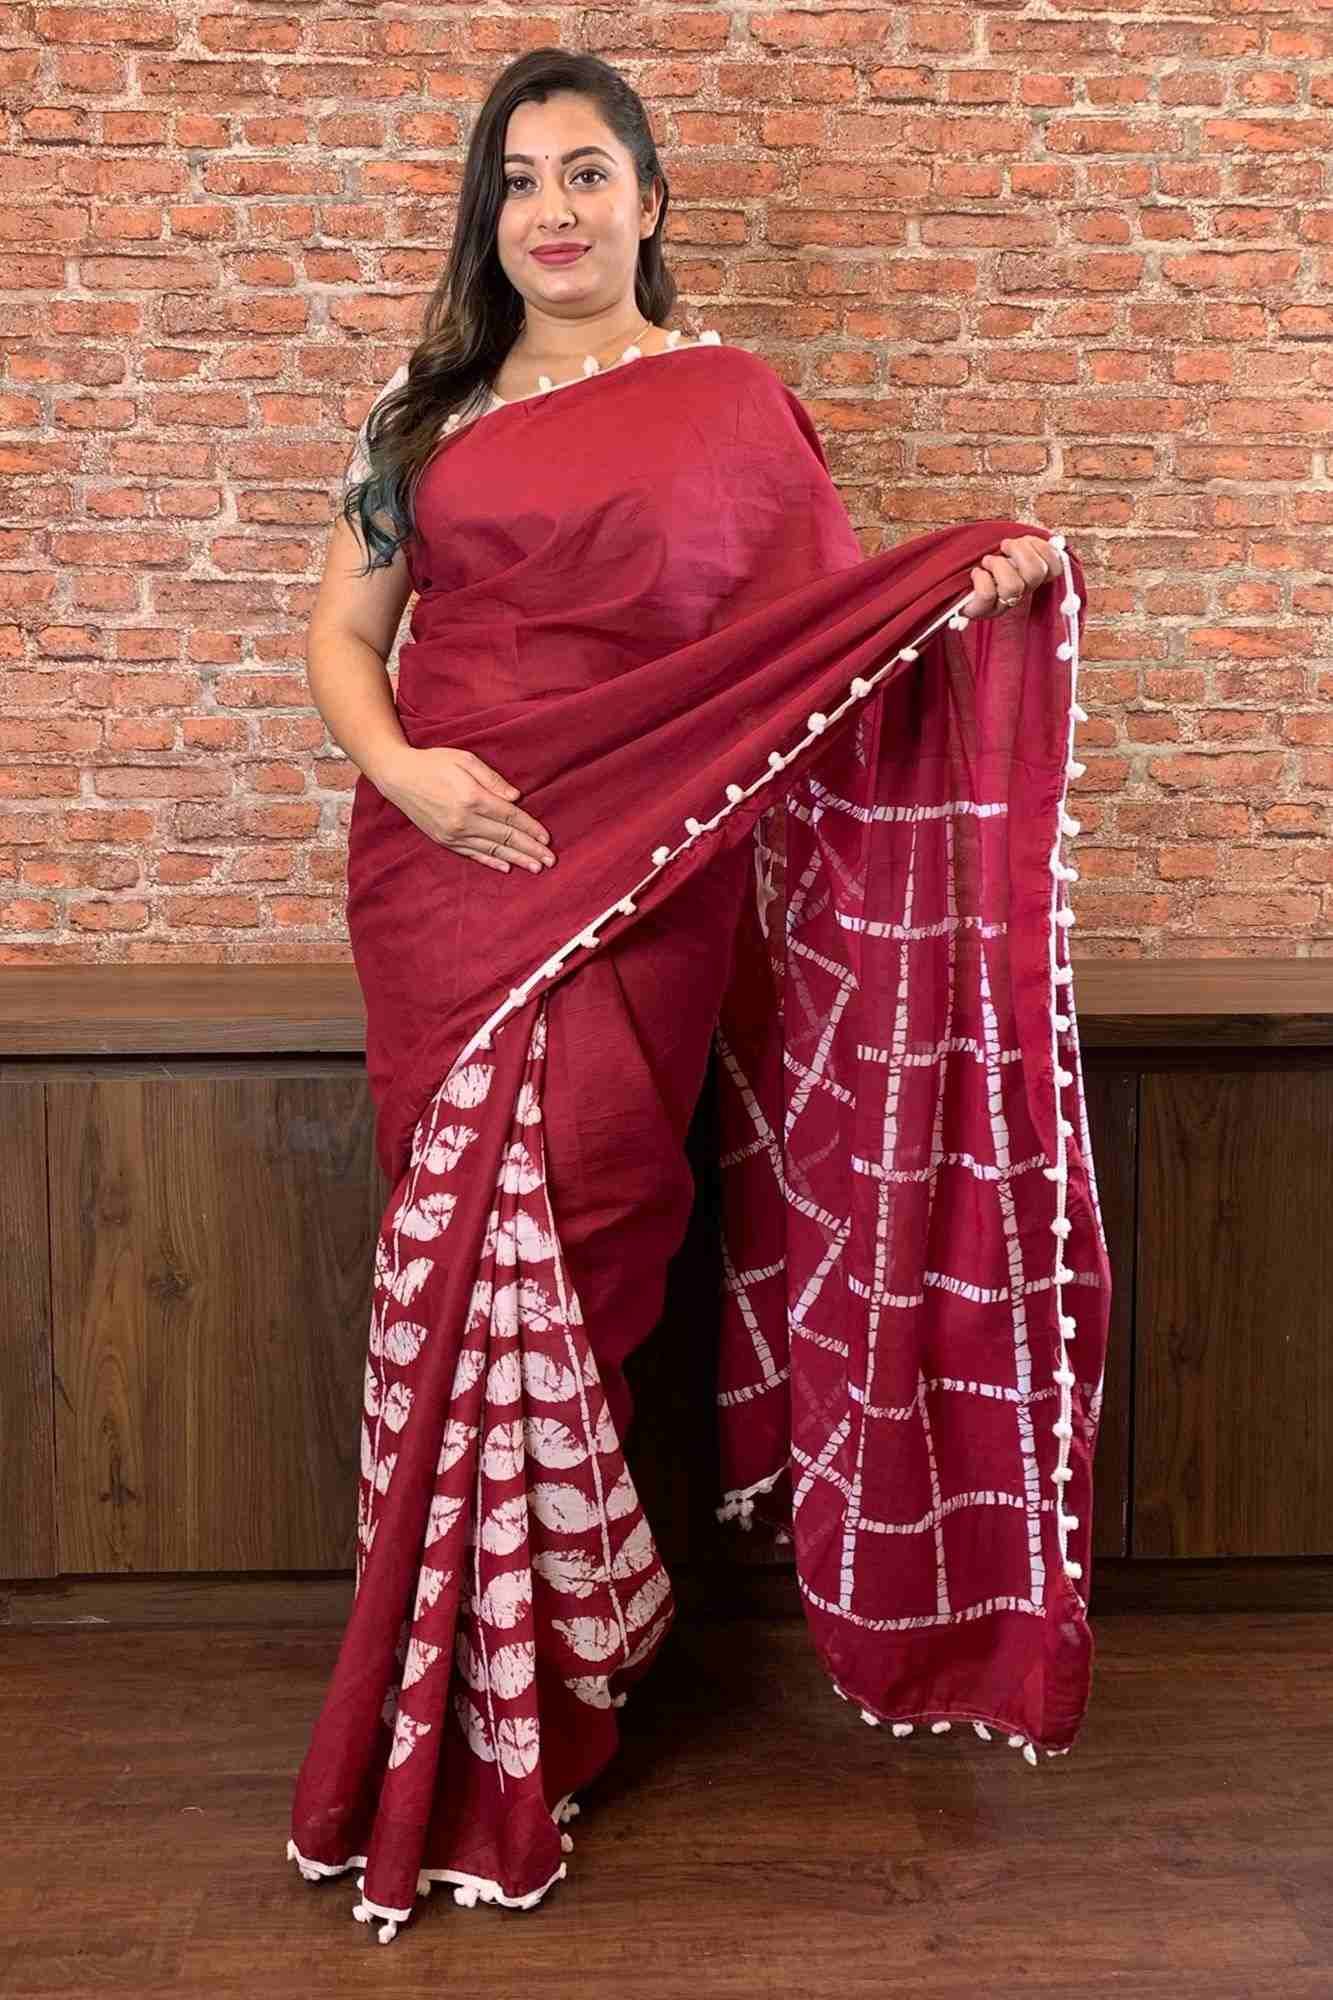 Burgundy hand block mul mul cotton wrap in 1 minute saree with pom pom